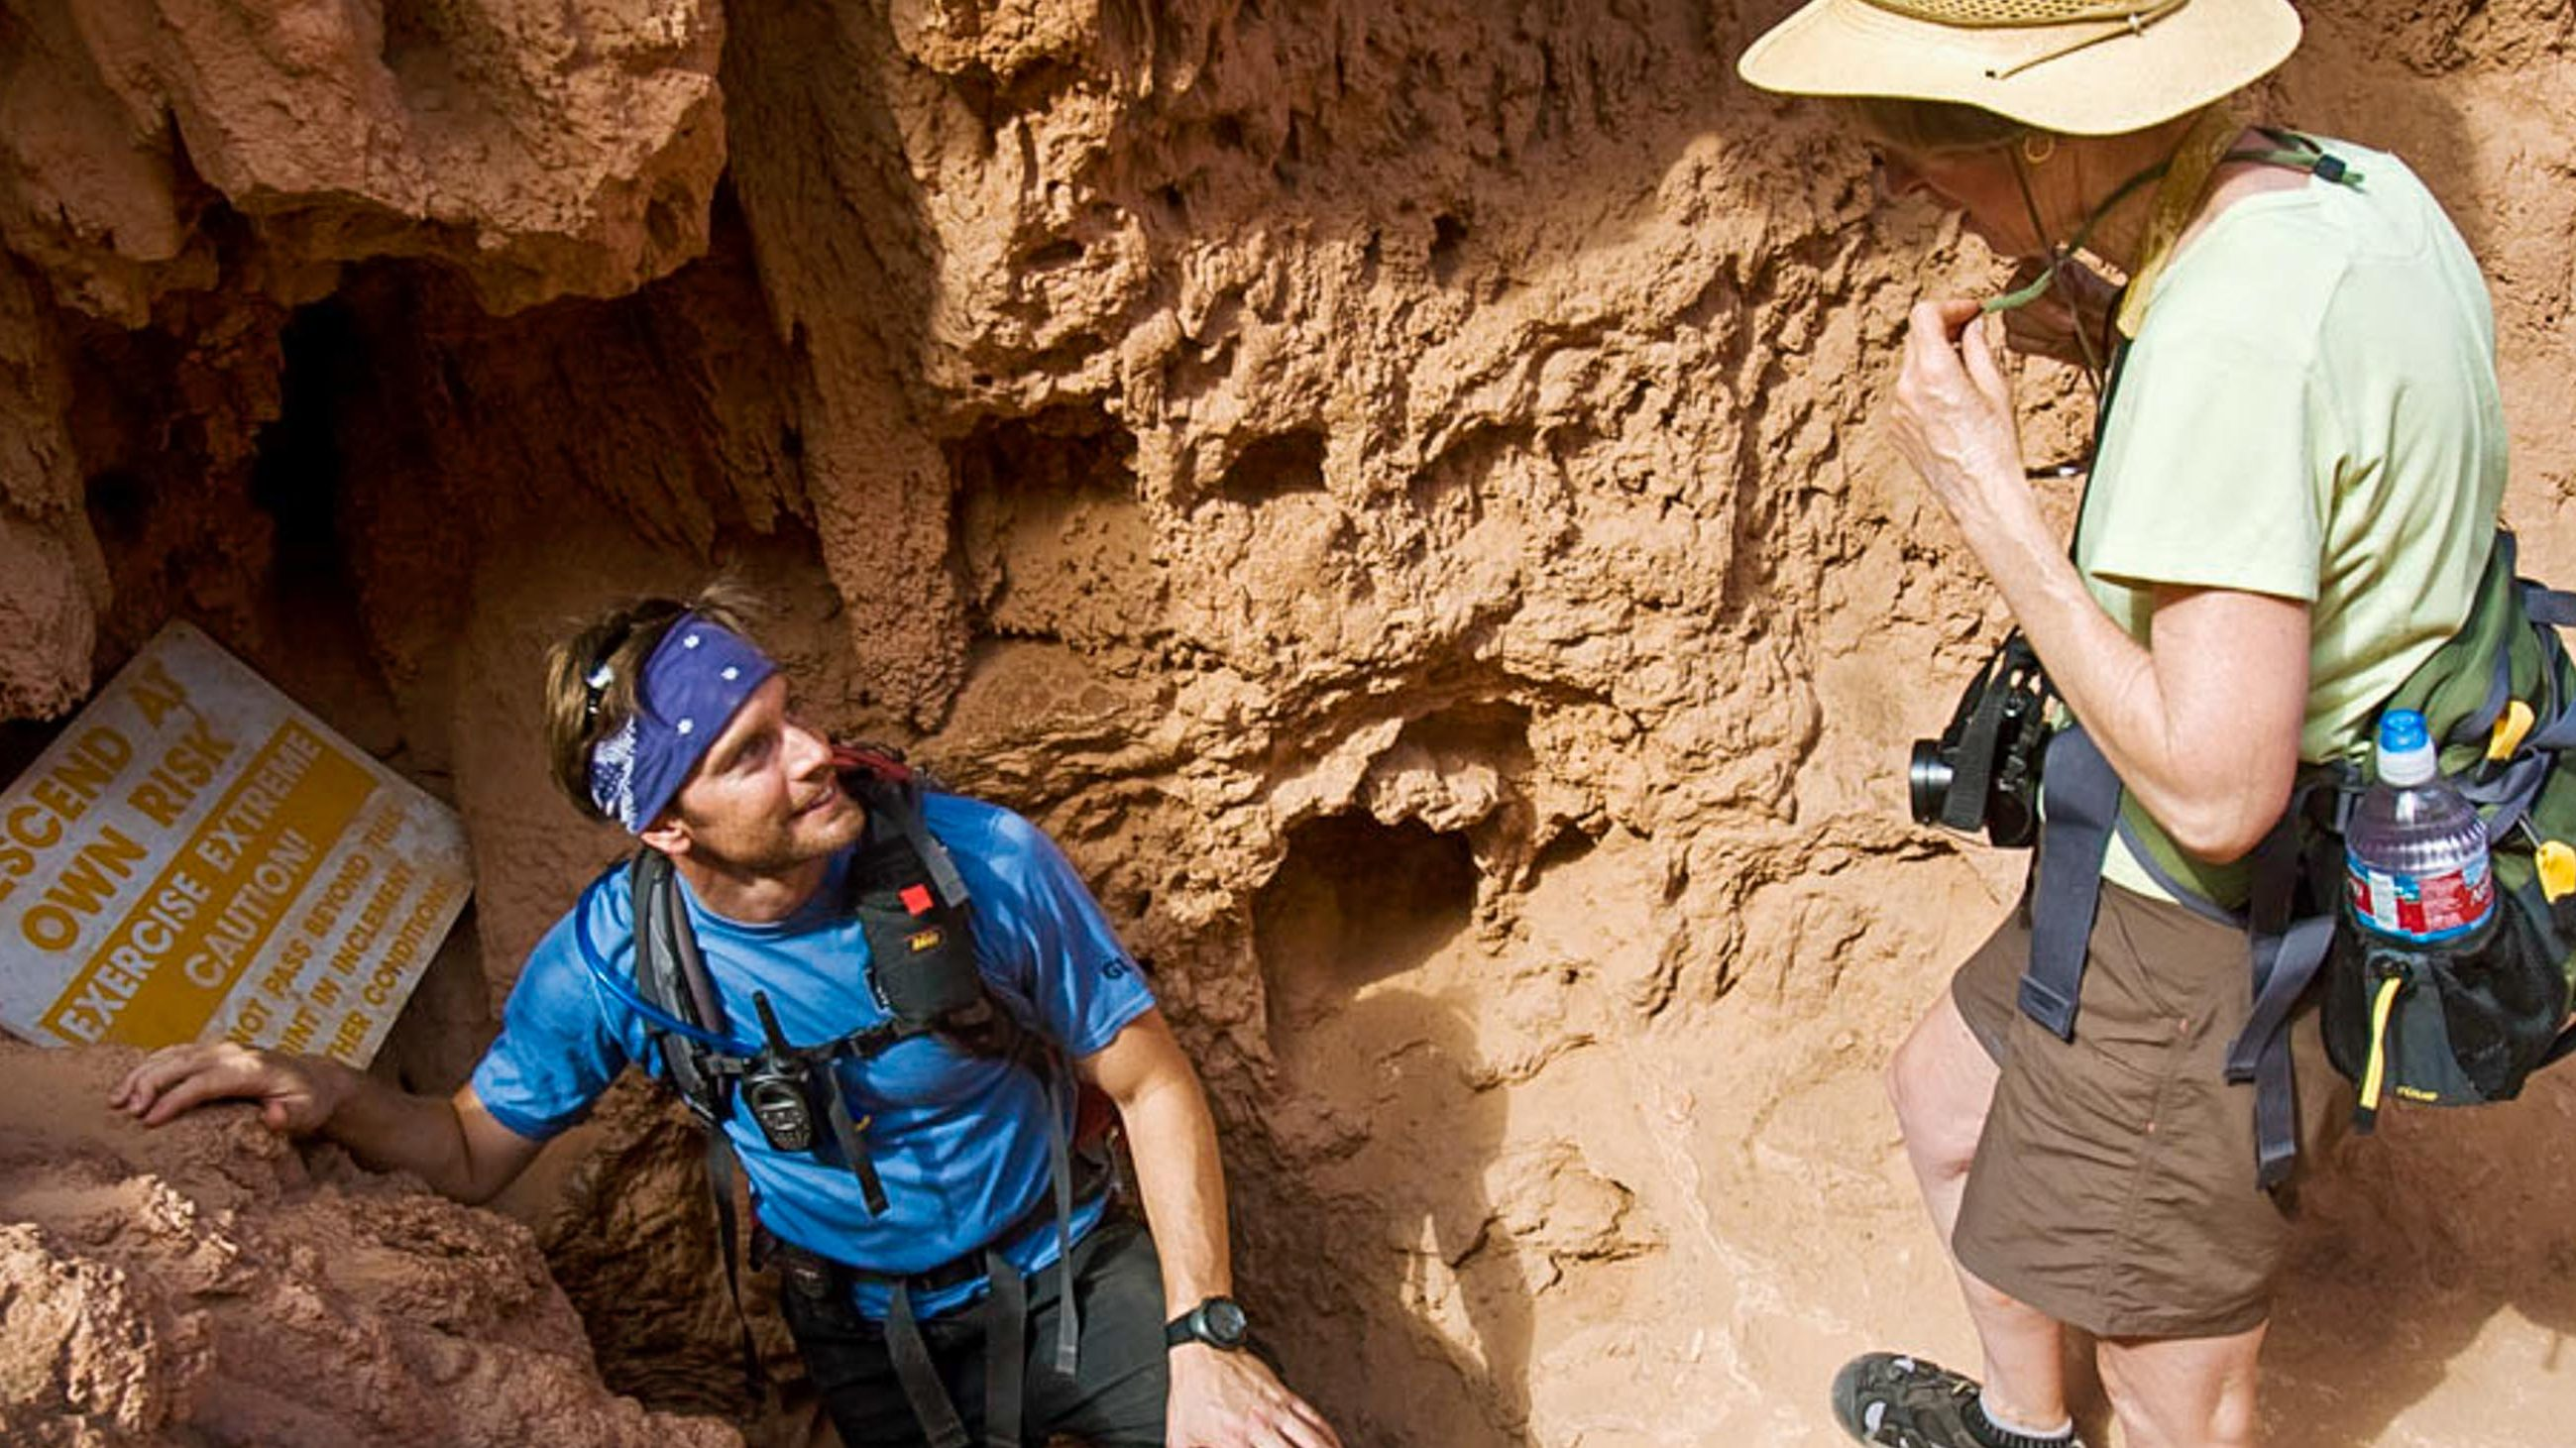 Hikers prepare to descend into caves on Havasu Falls trip